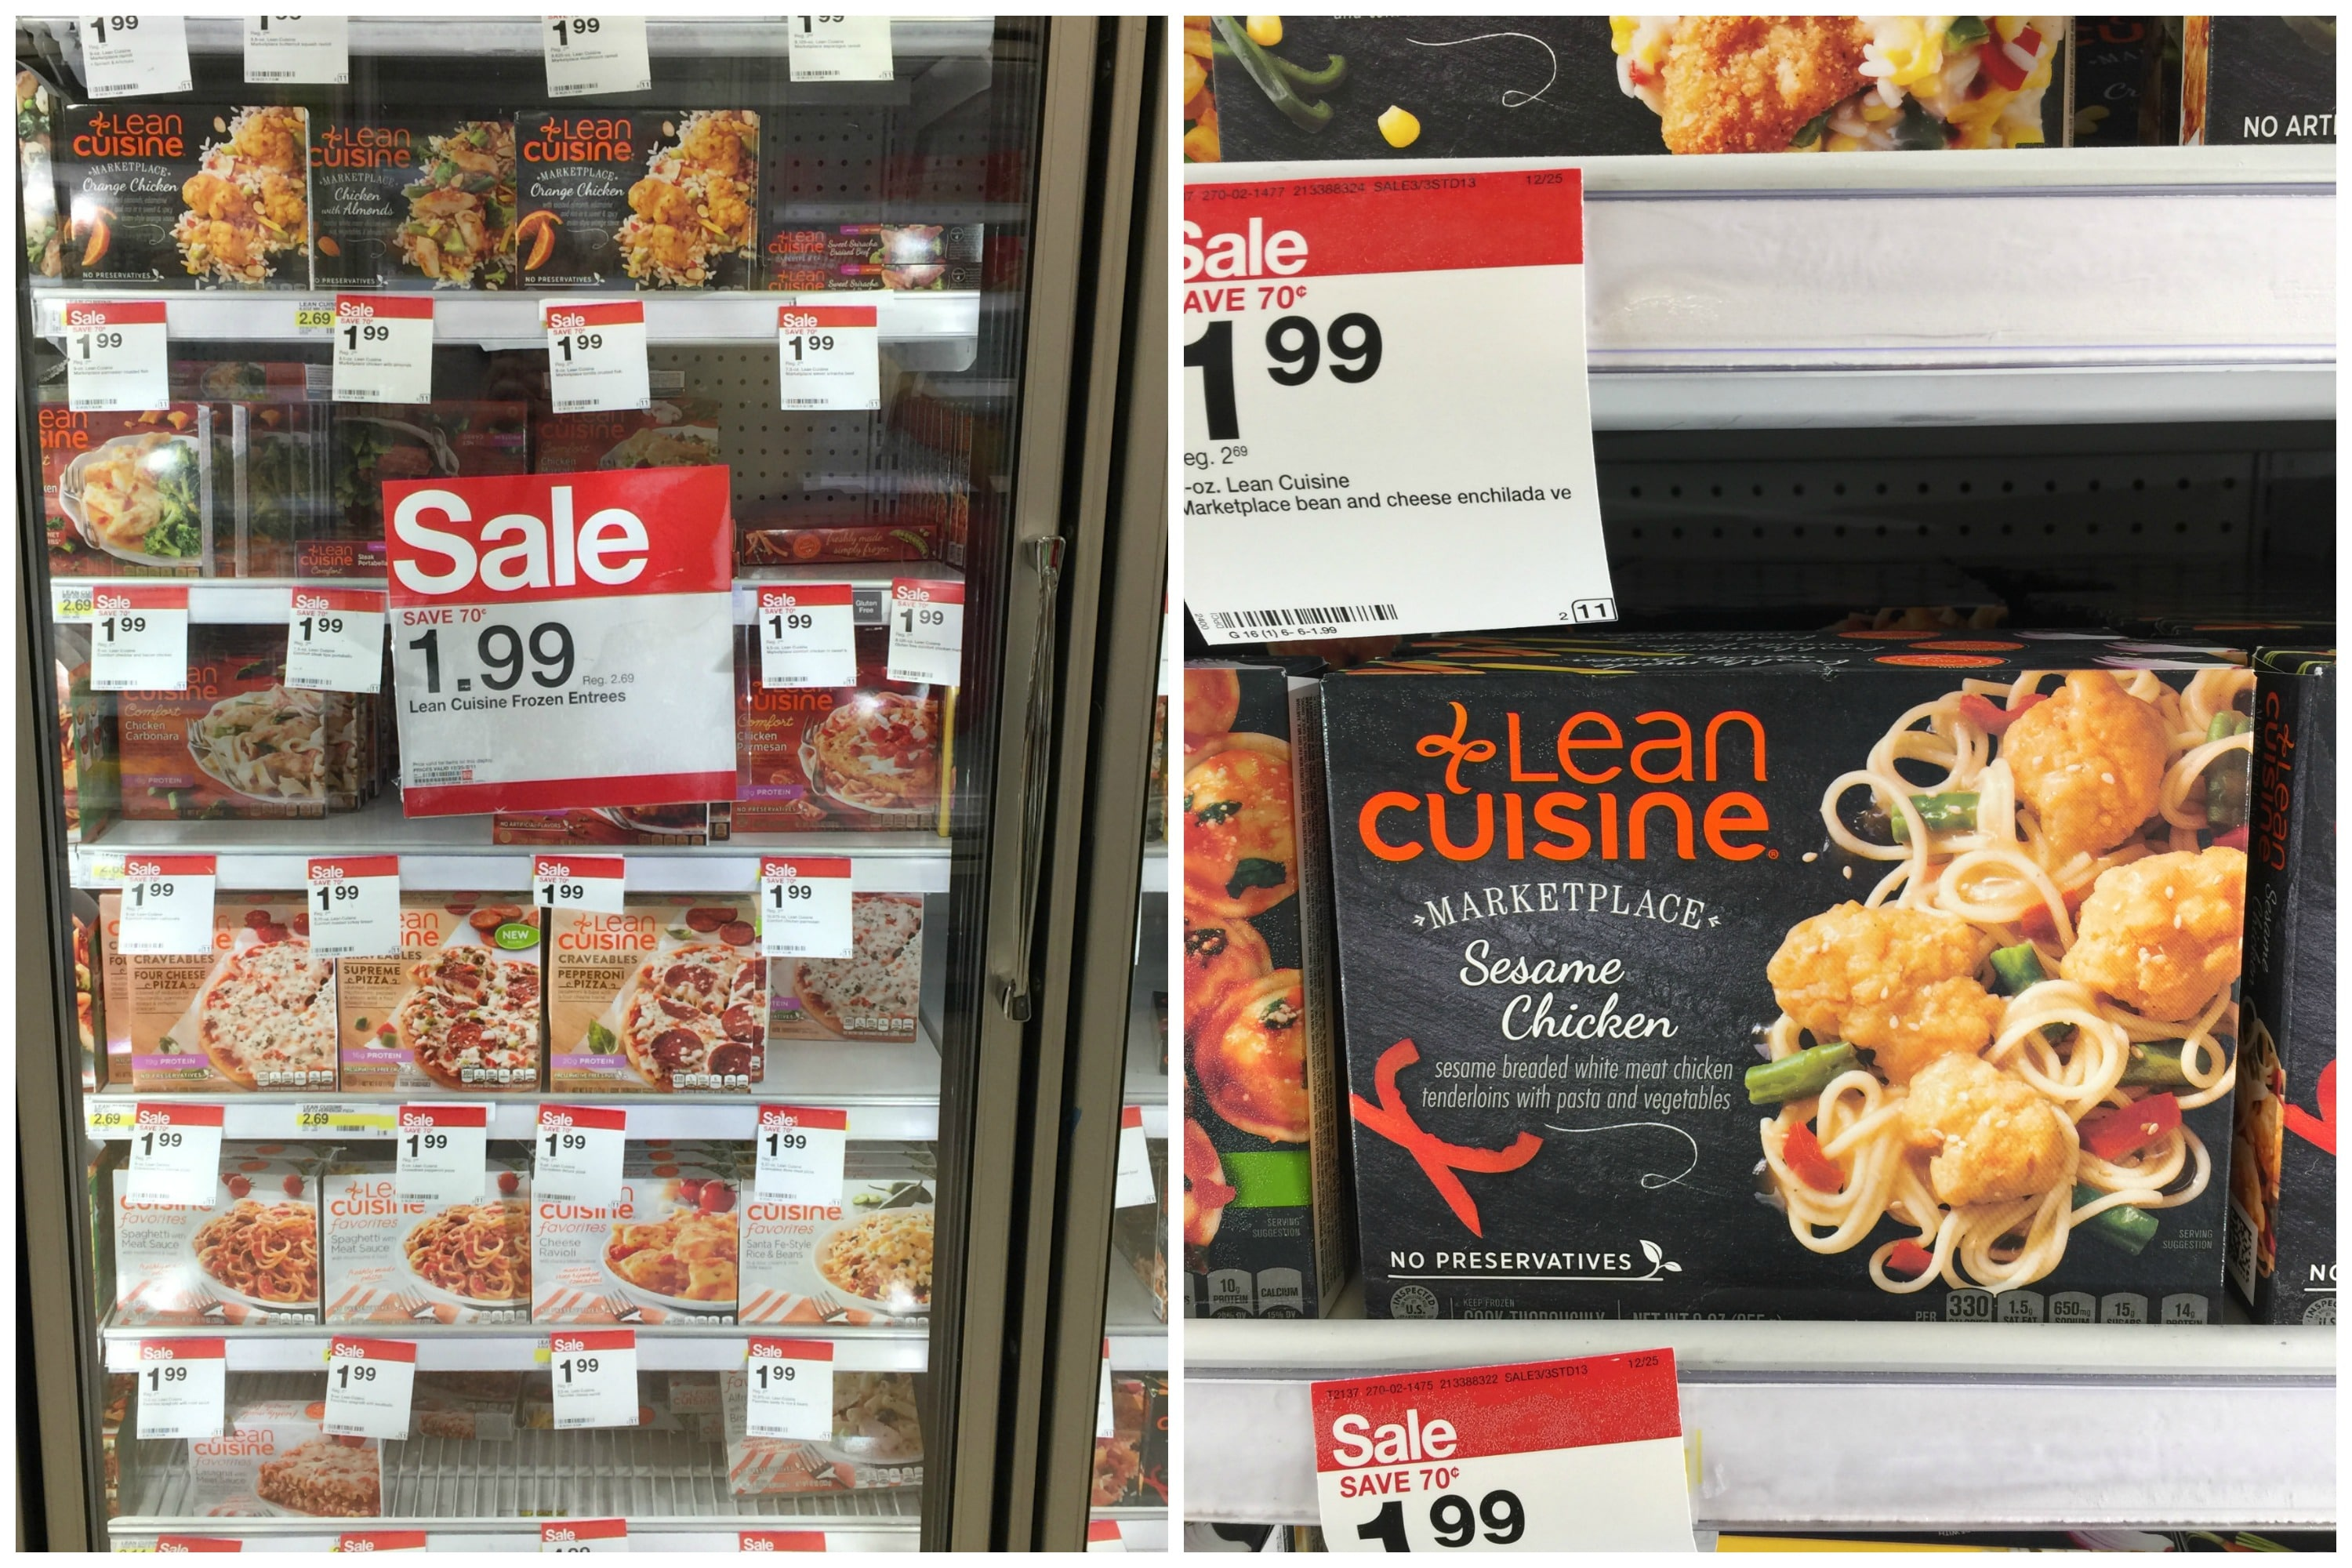 Grocery store aisle with Lean Cuisine meals in the freezer on sale